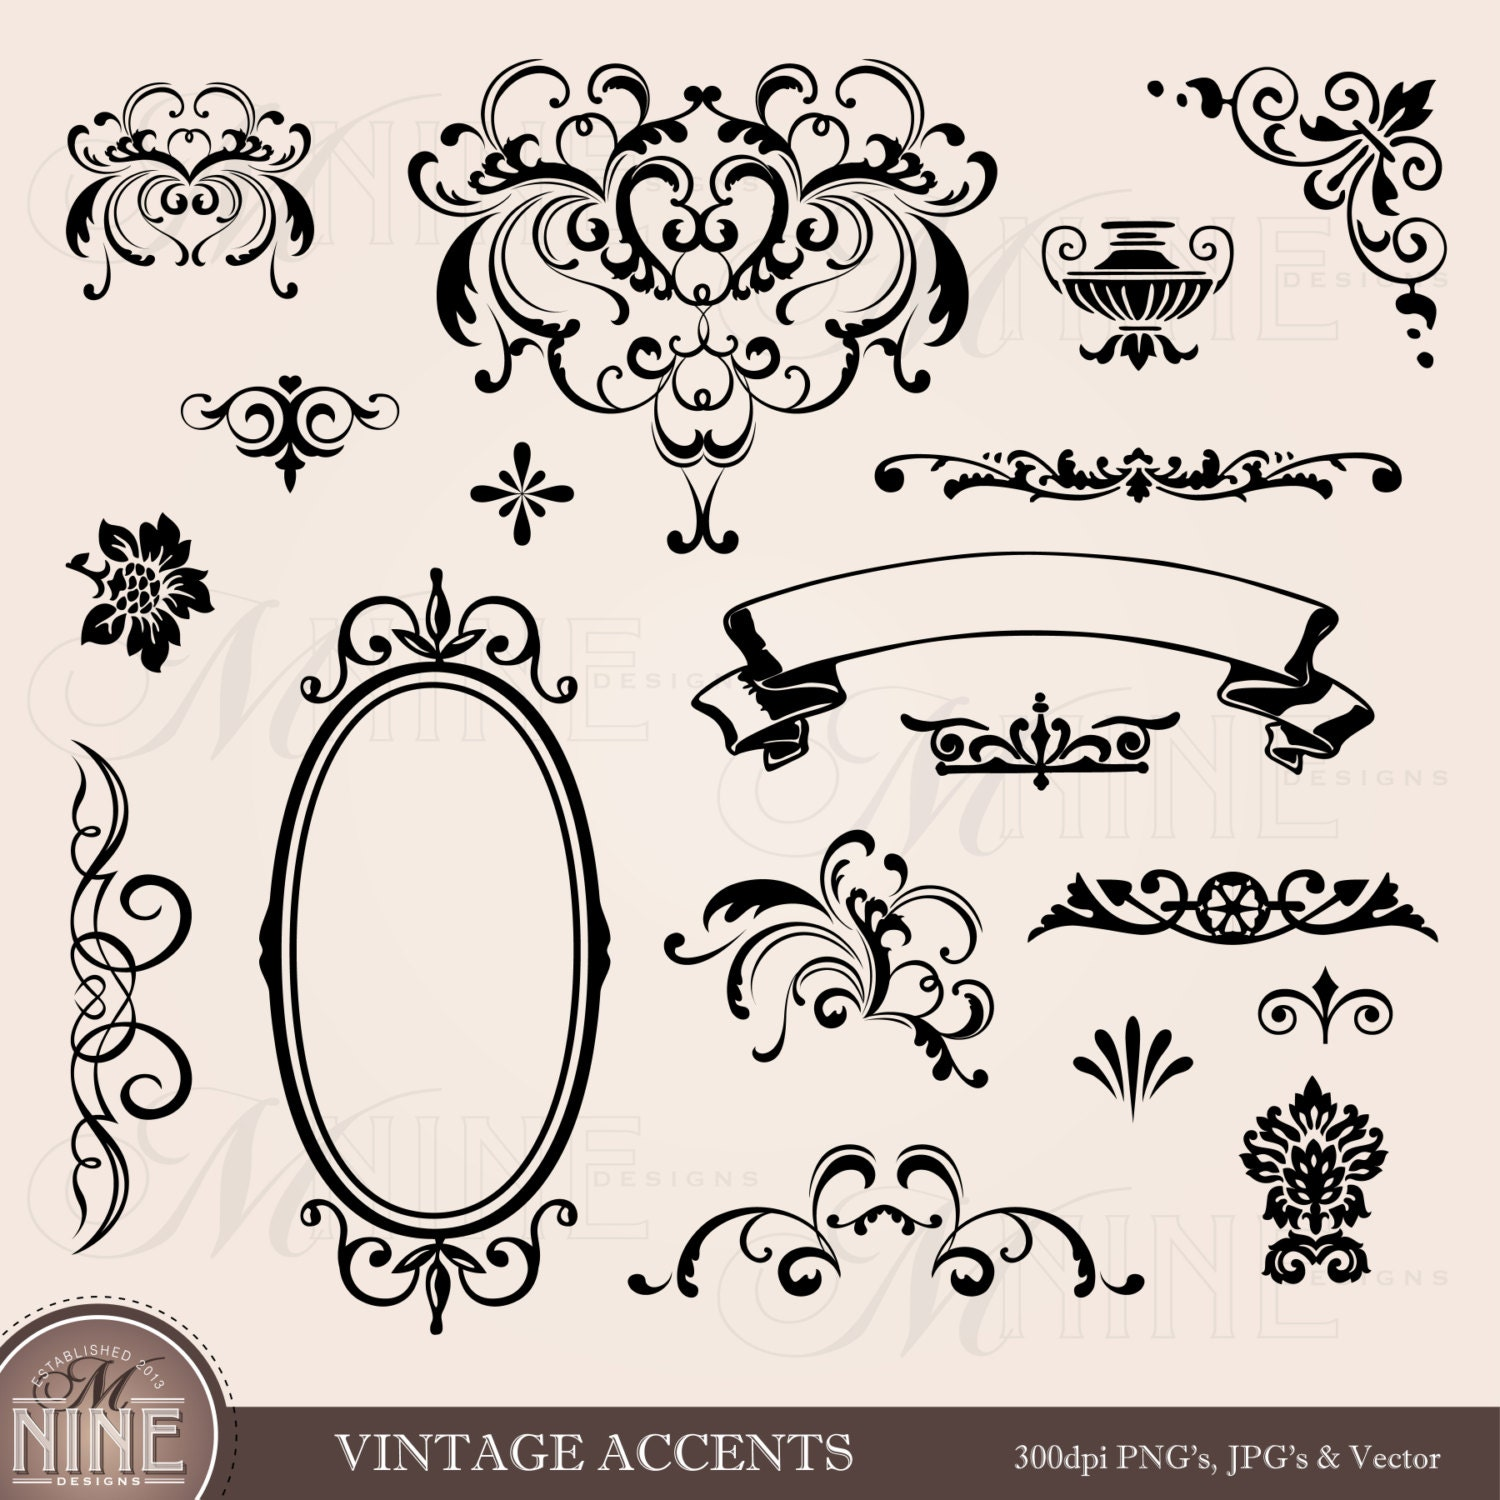 VINTAGE ACCENTS Clip Art: Accent Clipart Design Elements